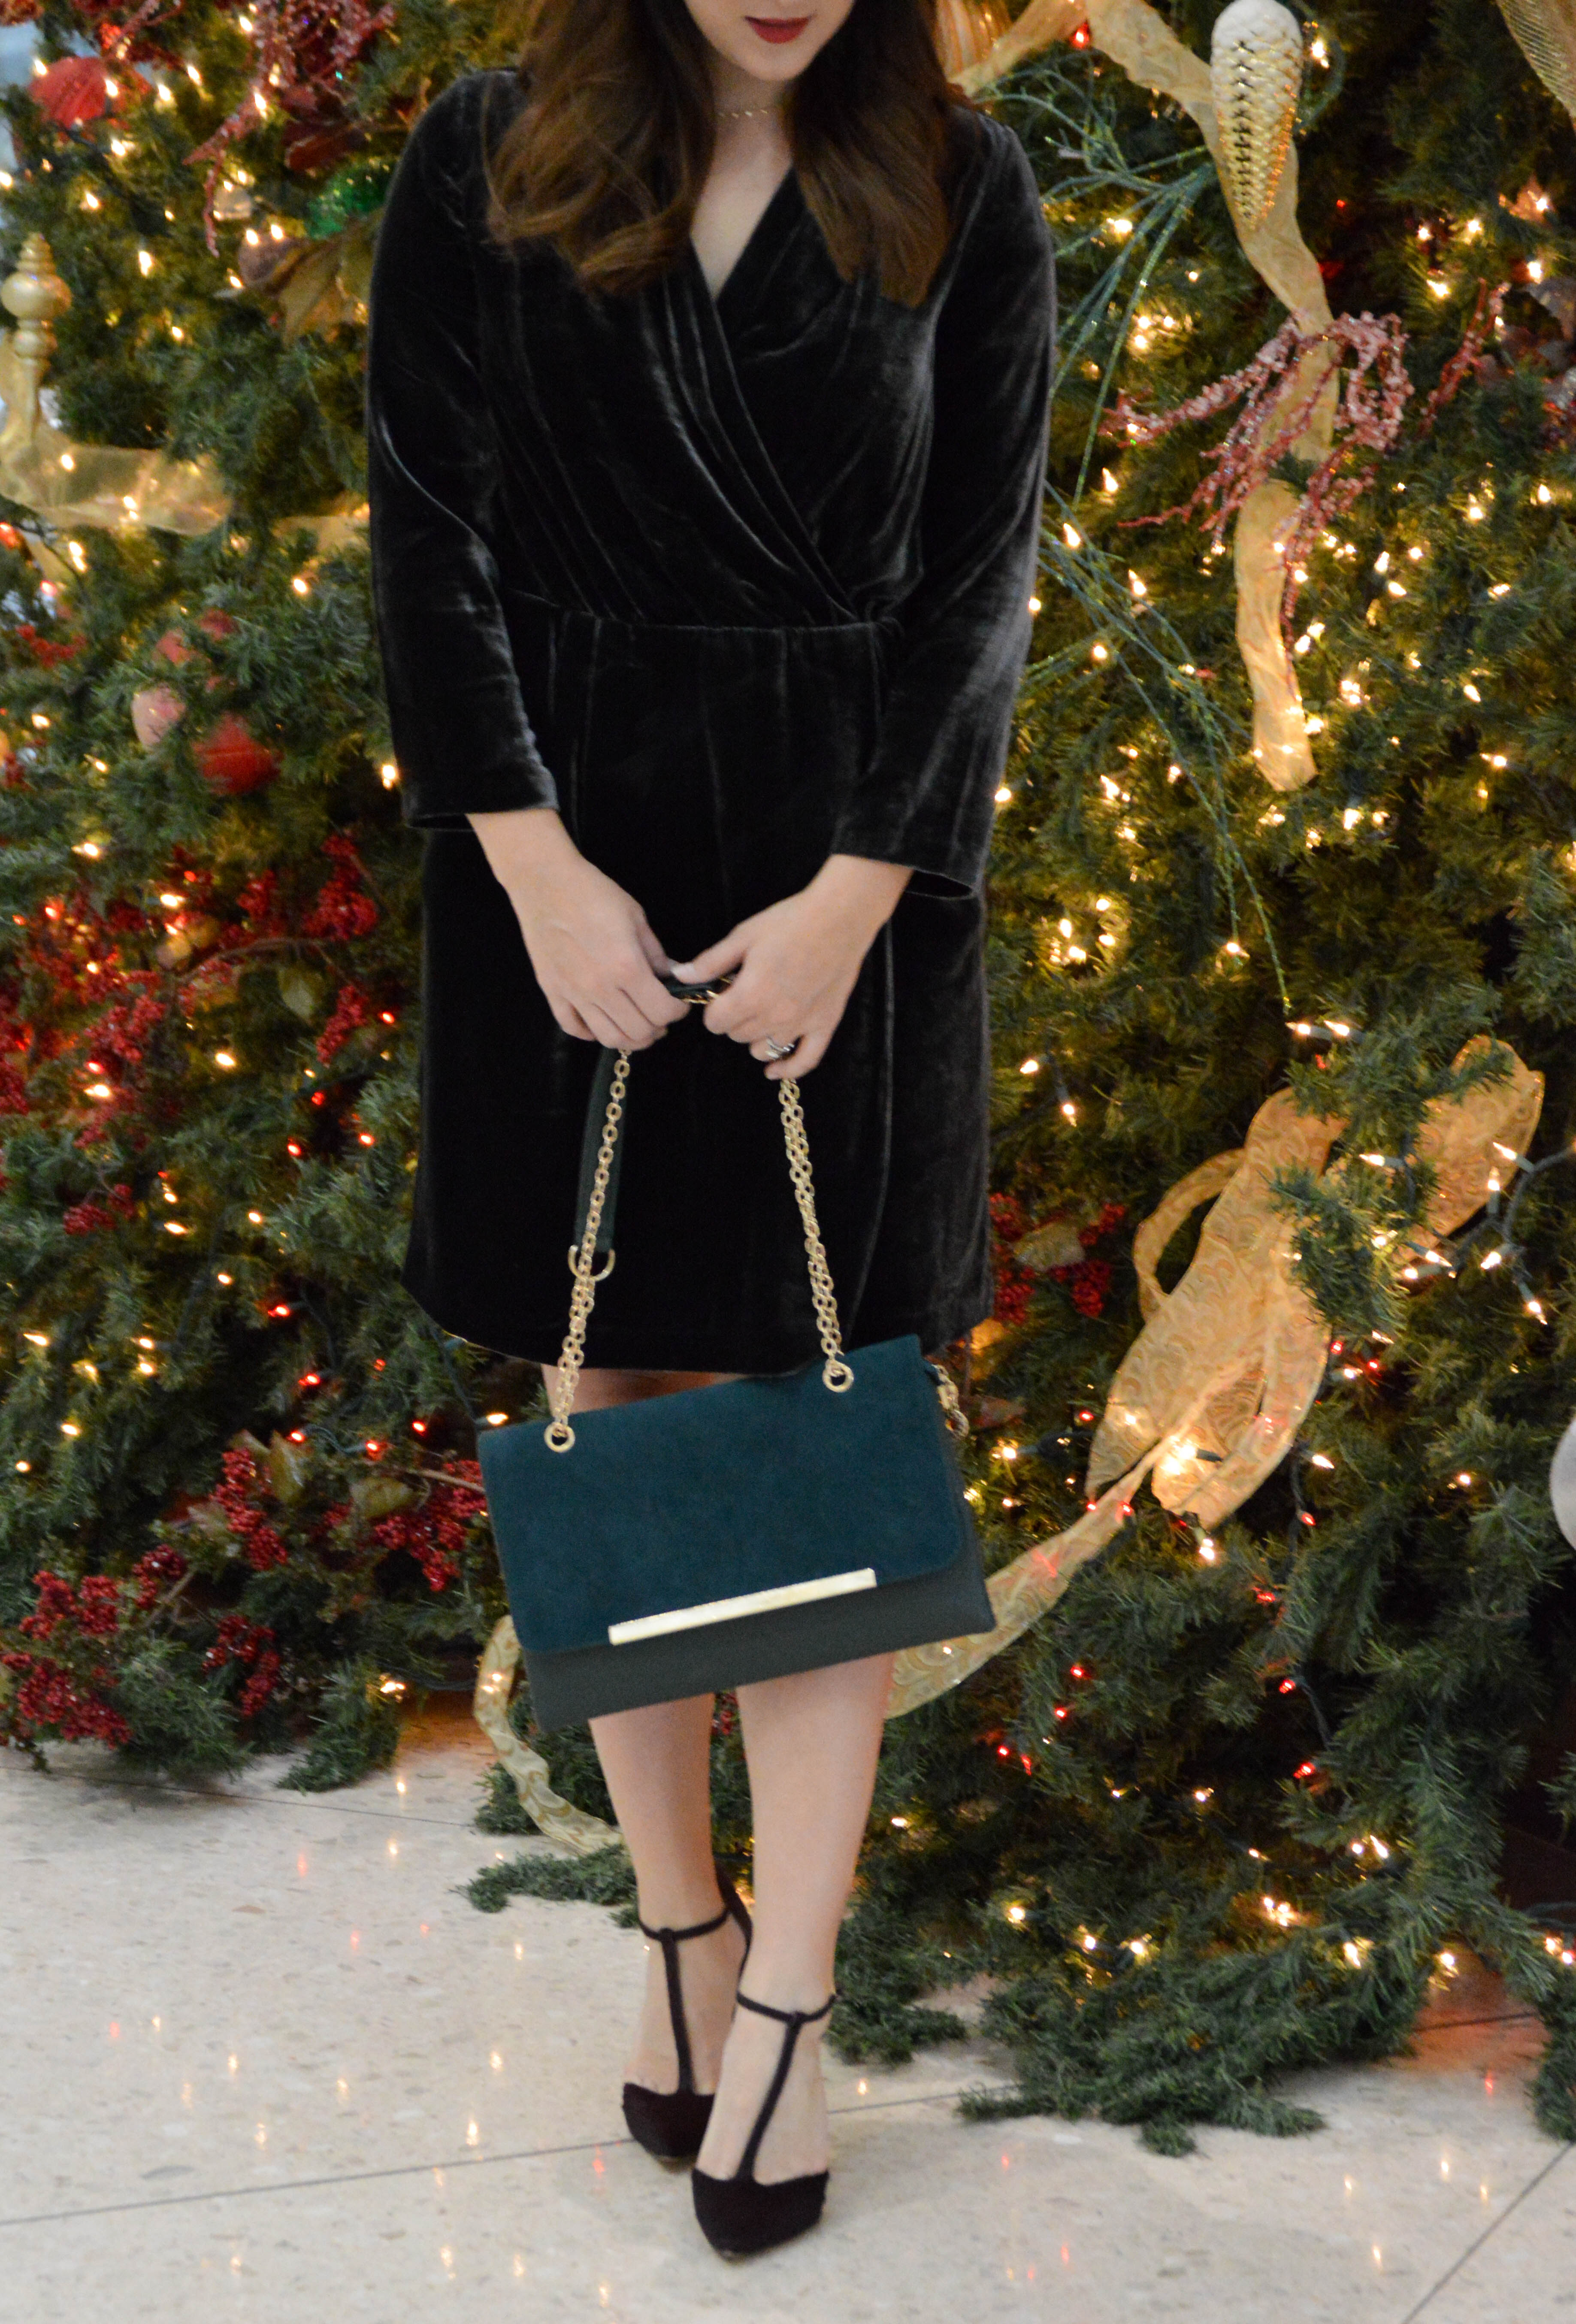 Banana Republic velvet dress - holiday fashion - Agnes Wright Blog